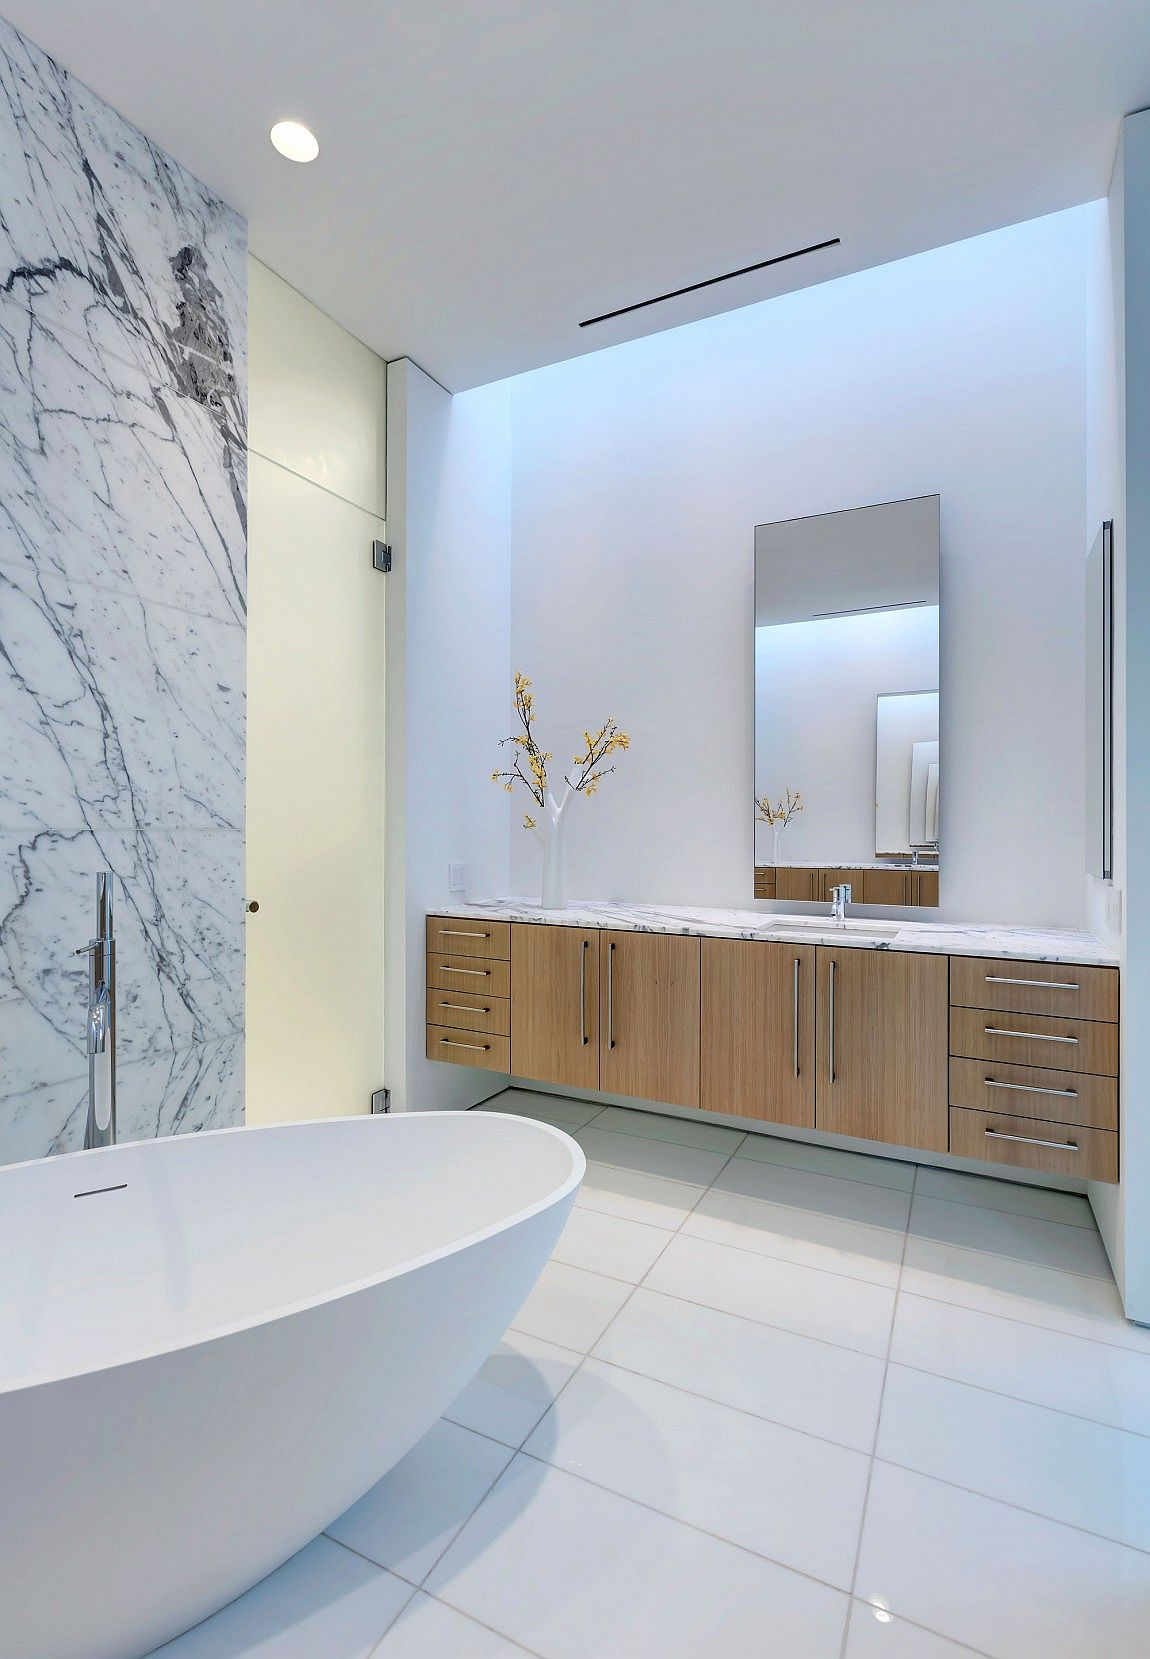 Marble countertops and background add an air of luxury to the contemporary bathrooom